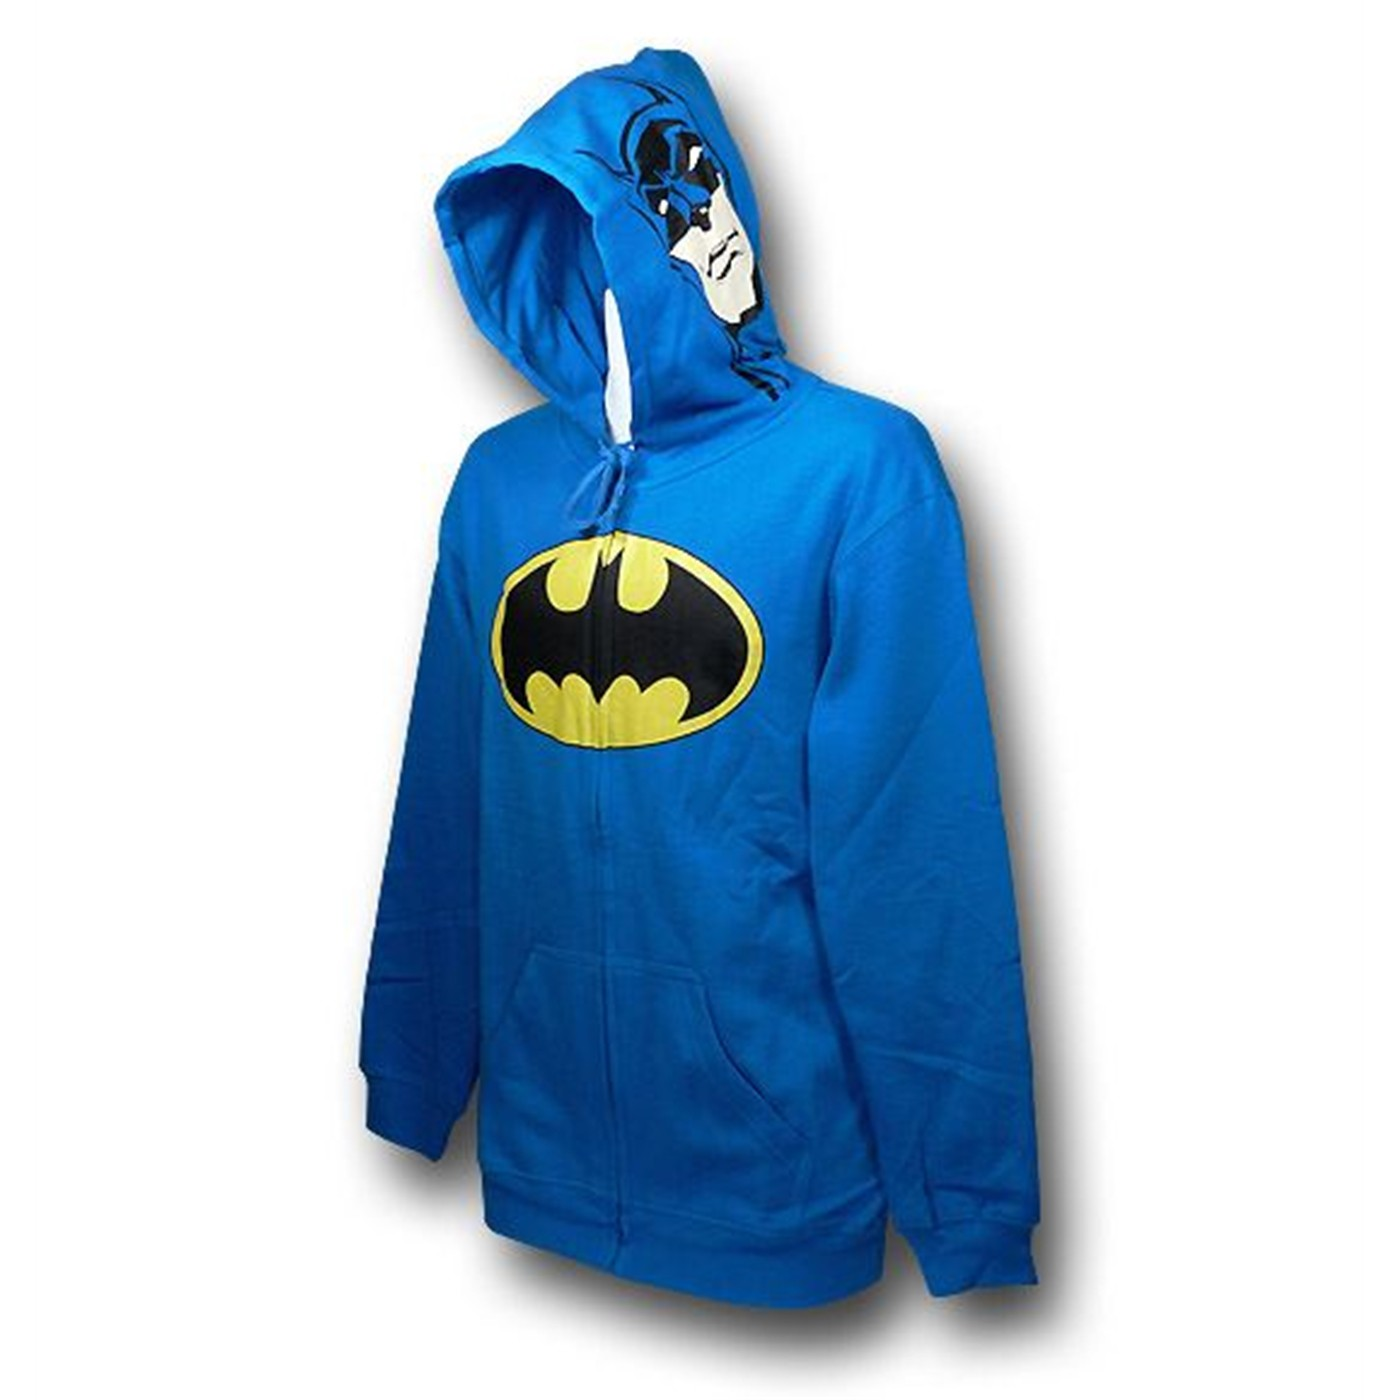 Batman Costume Sideward Glance Zip-Up Hoodie